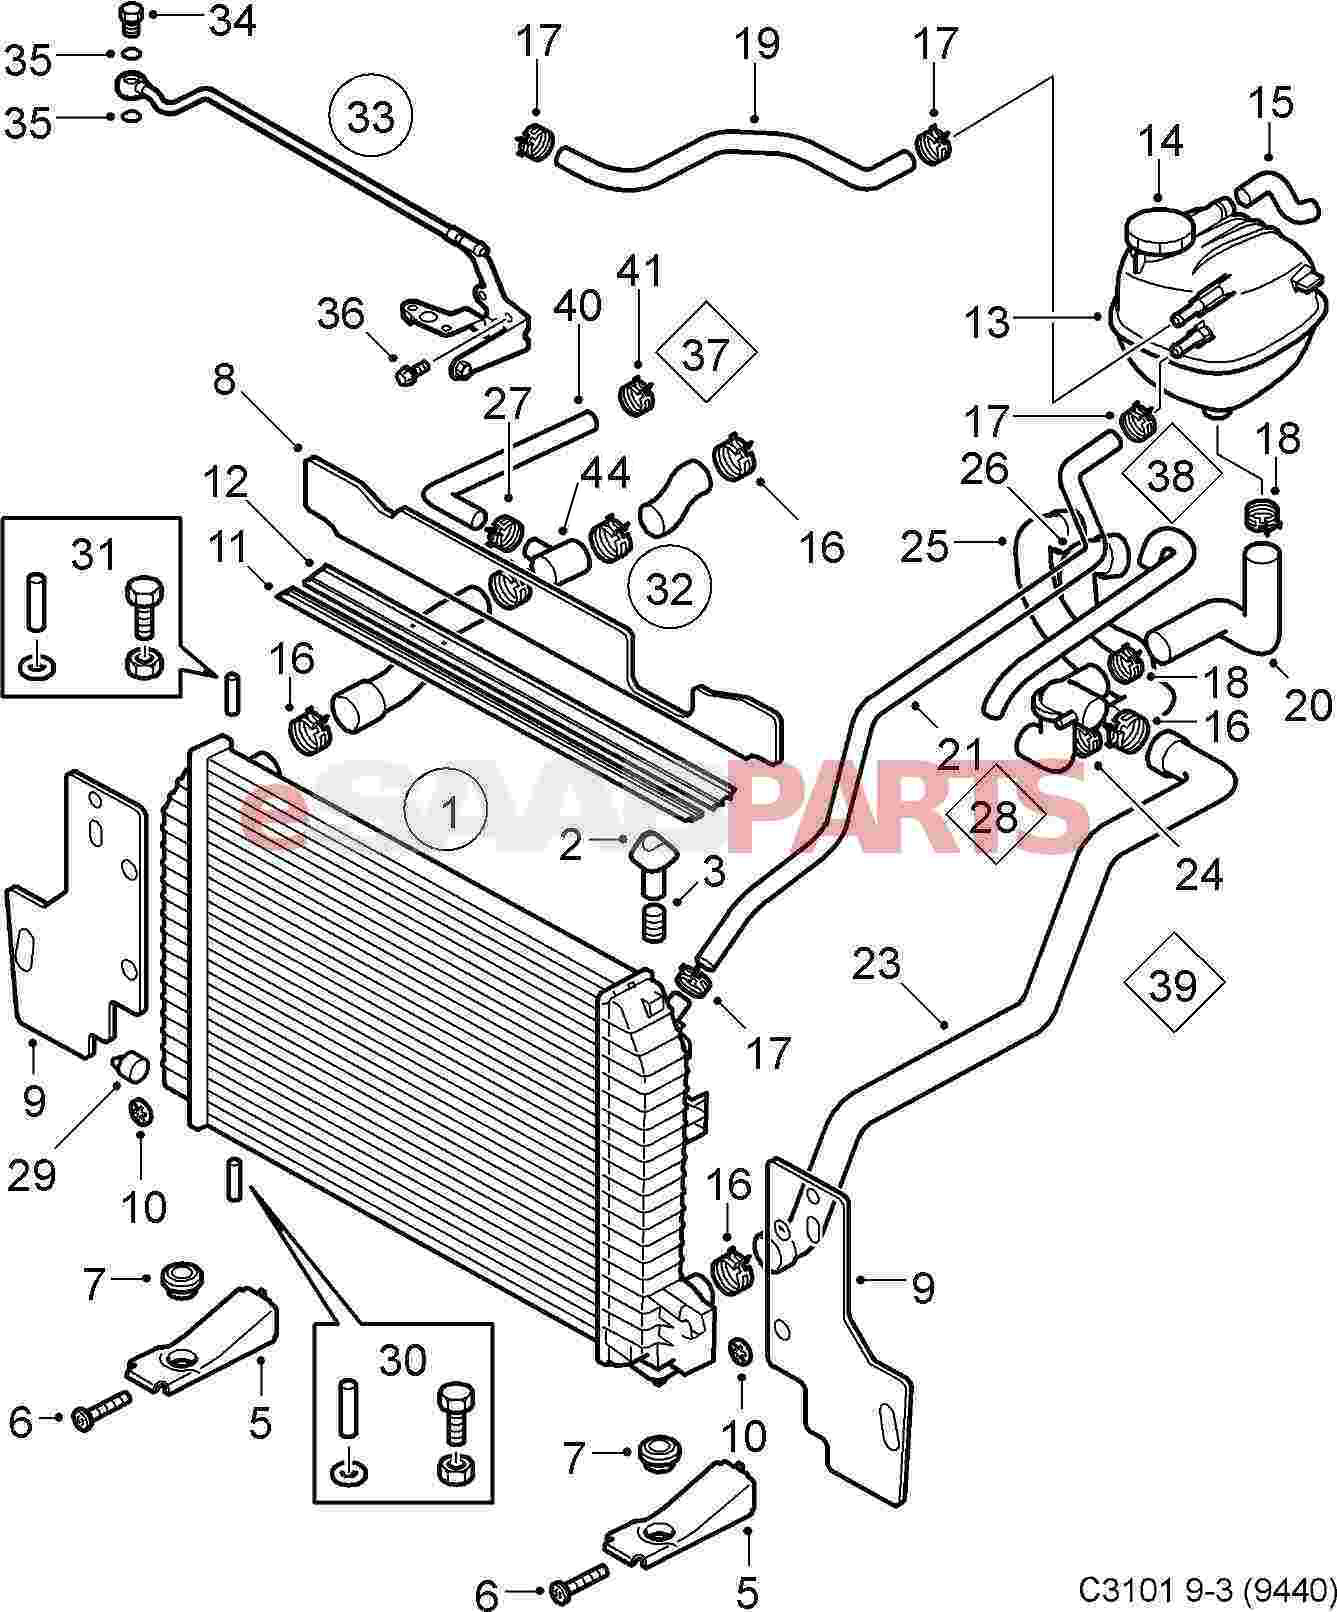 hight resolution of saab cooling system diagram detailed wiring diagram rh 7 6 ocotillo paysage com saab 9 5 engine diagram saab diagram sohc